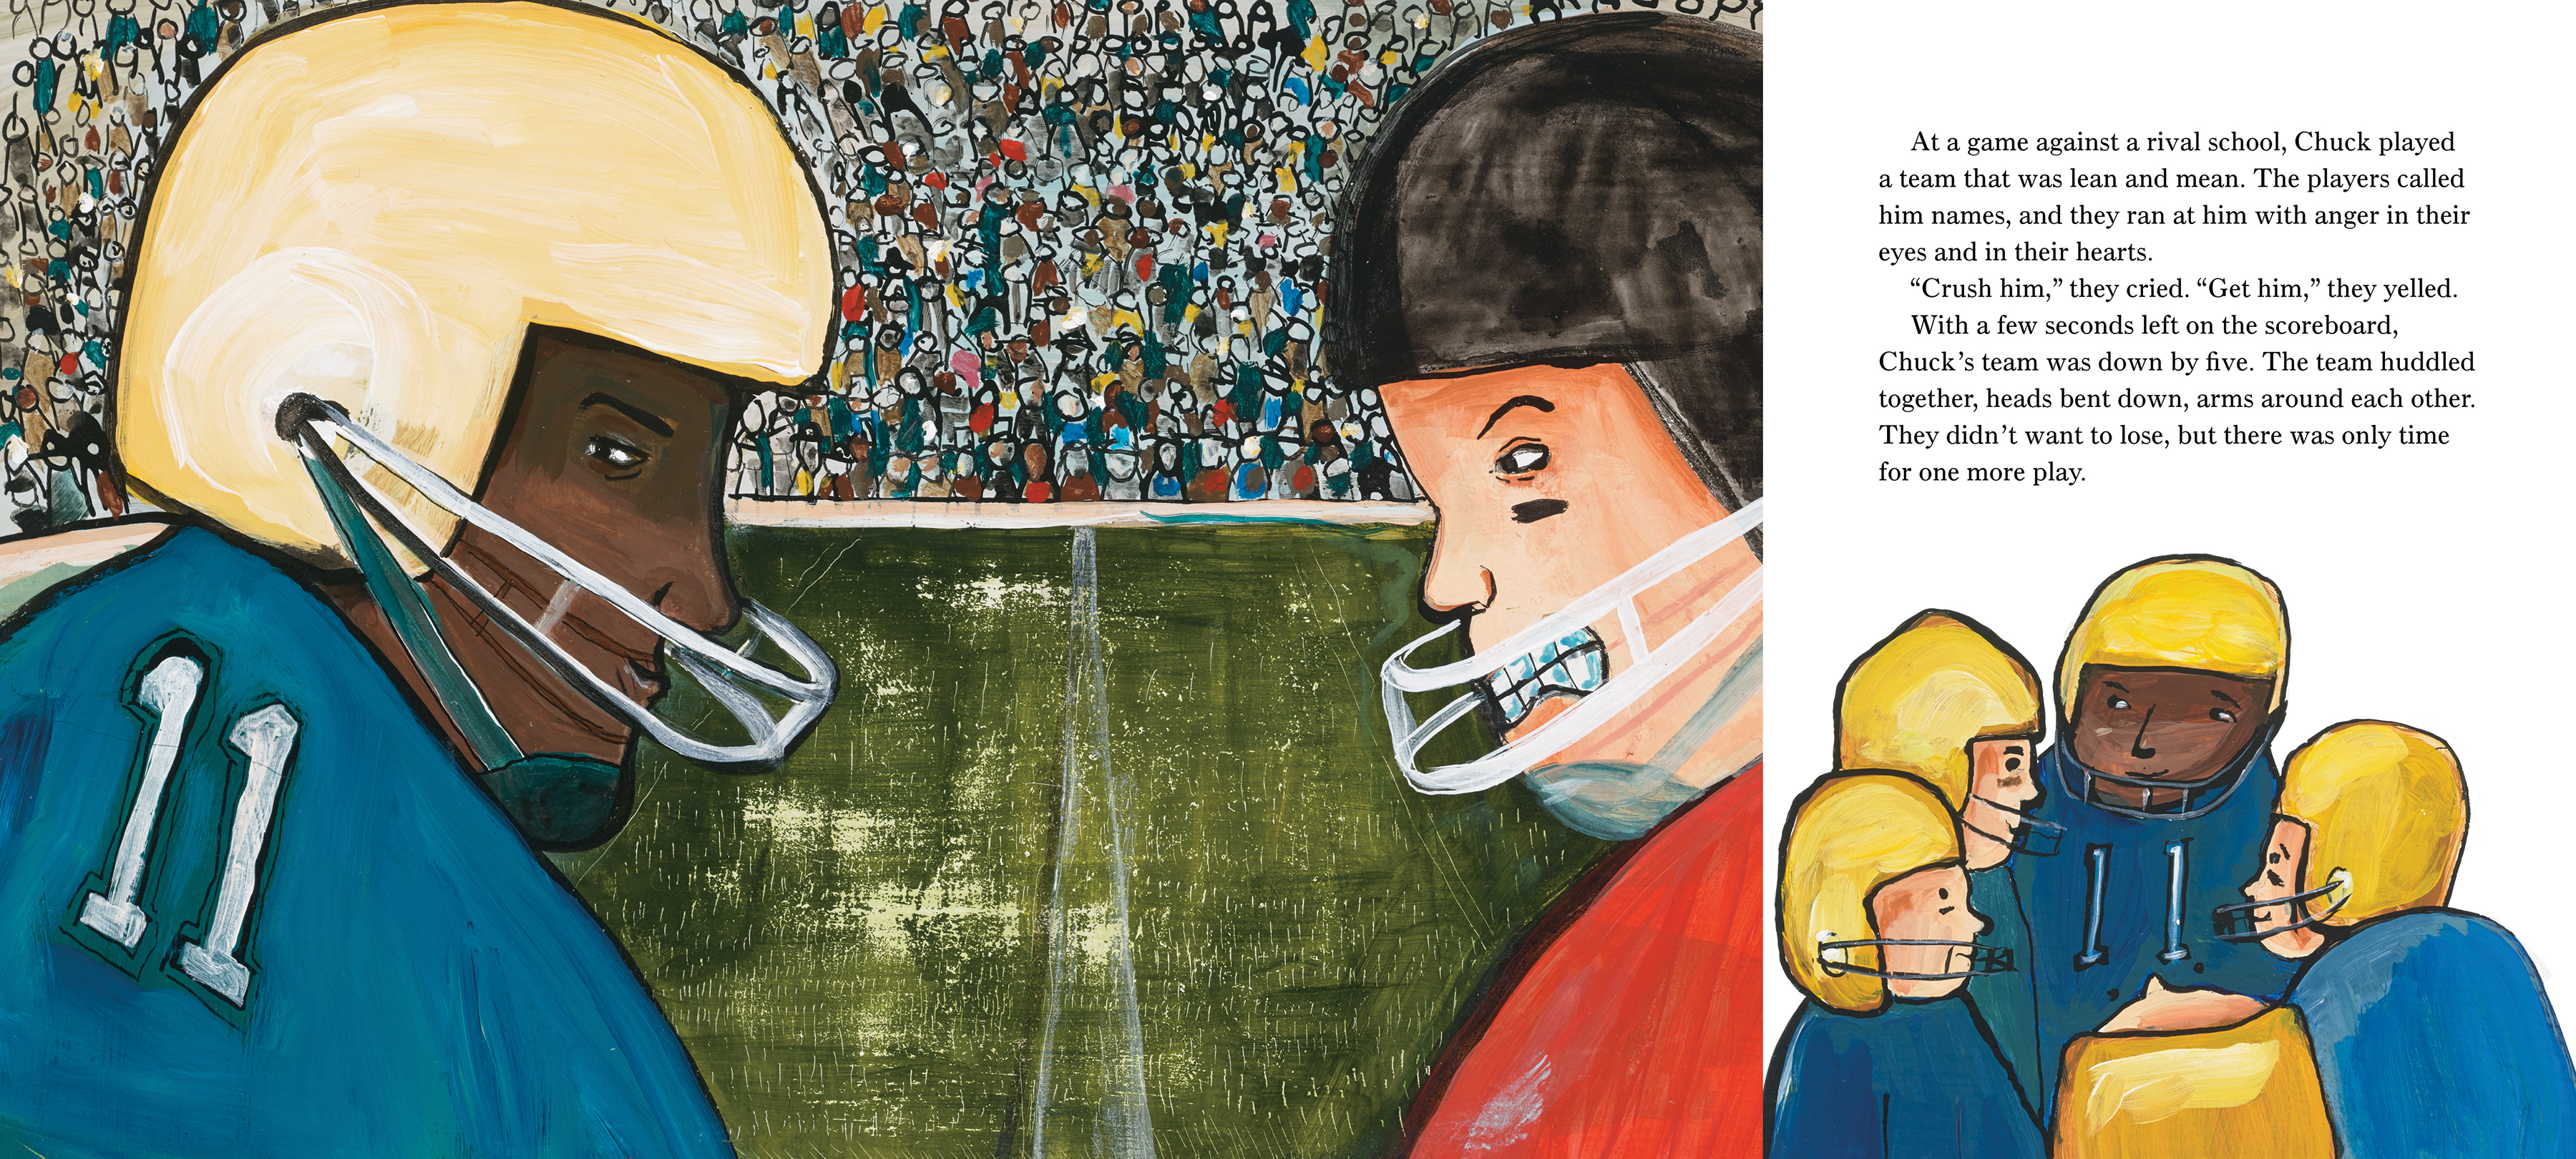 An excerpt from The Stone Thrower depicting a school football team playing a game with spectators in the stands.